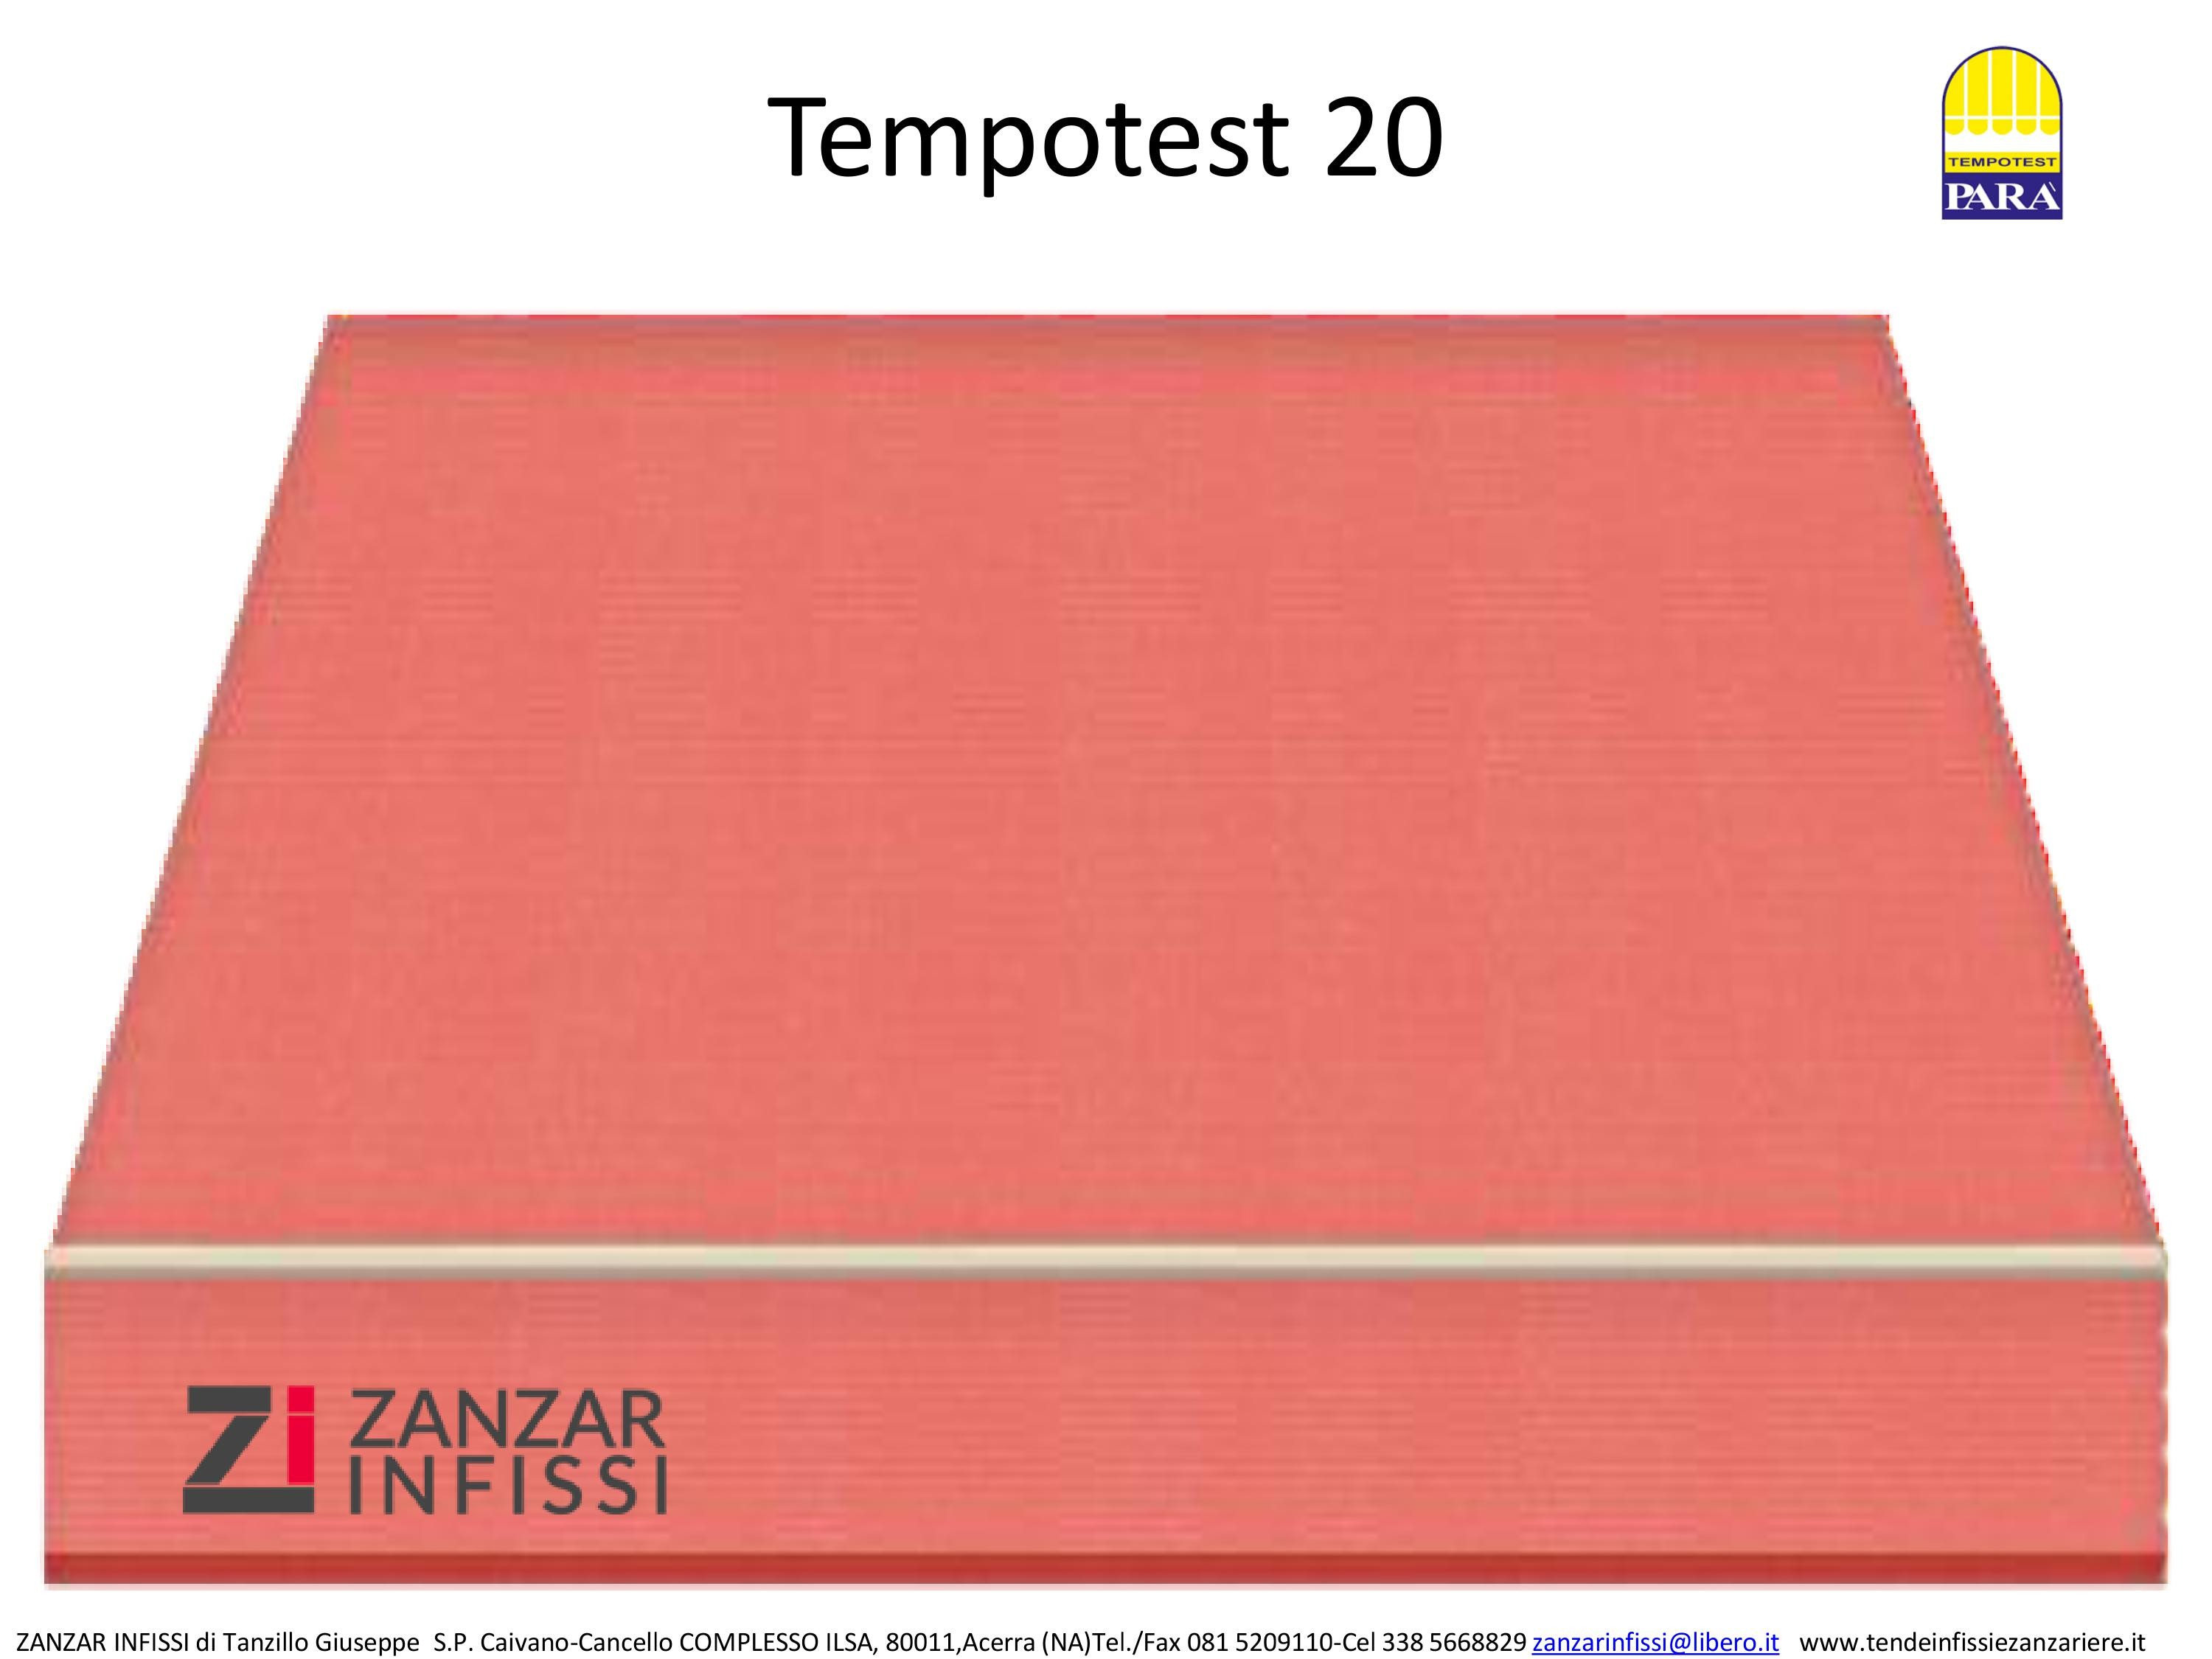 Tempotest 20